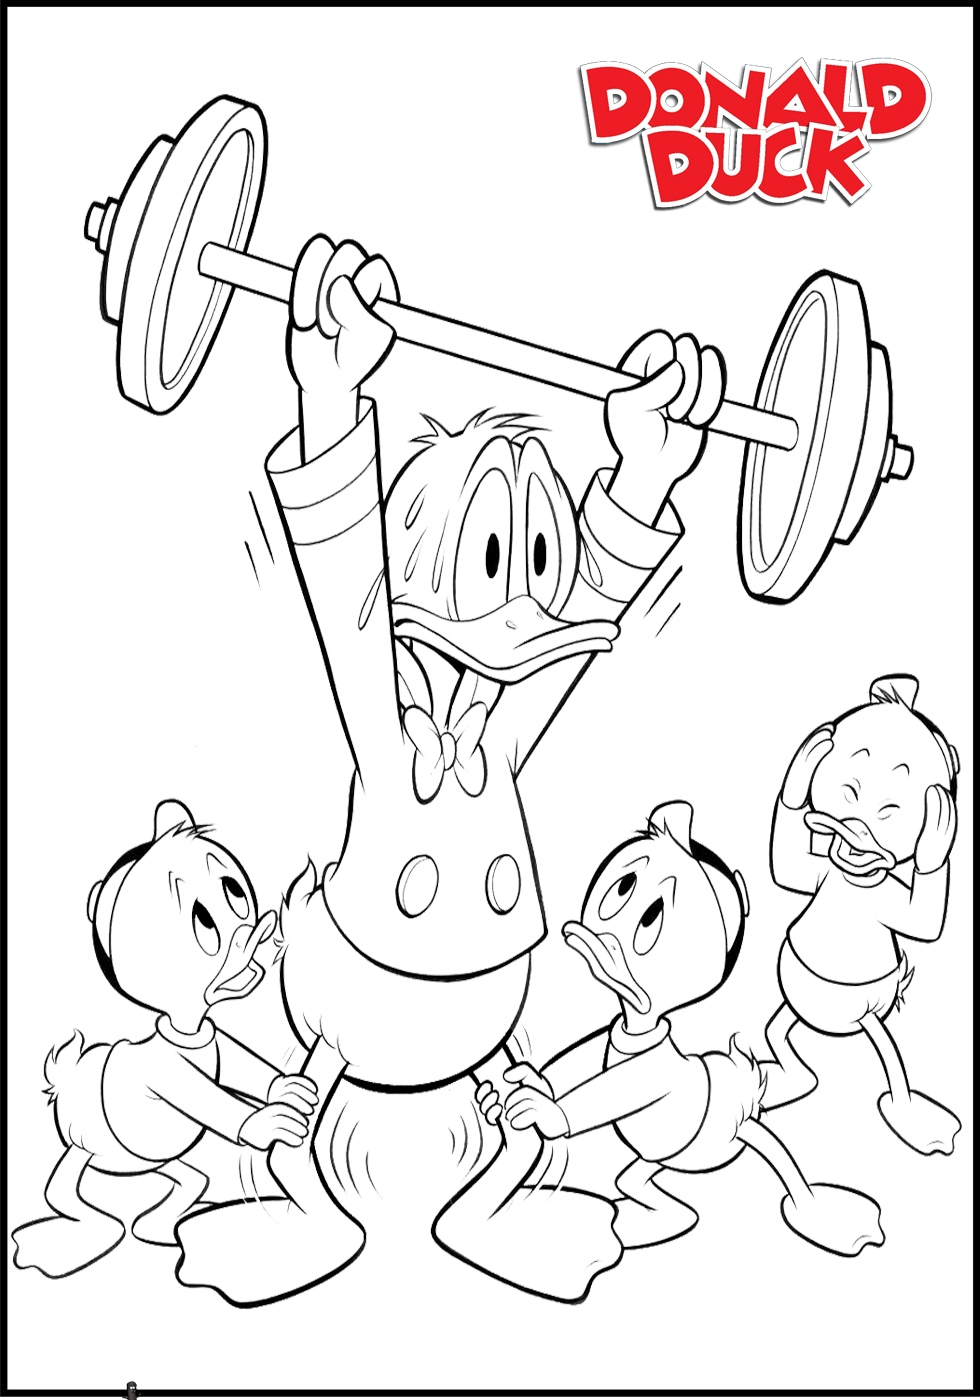 donald-duck-and-his-nephiews-coloring-pages